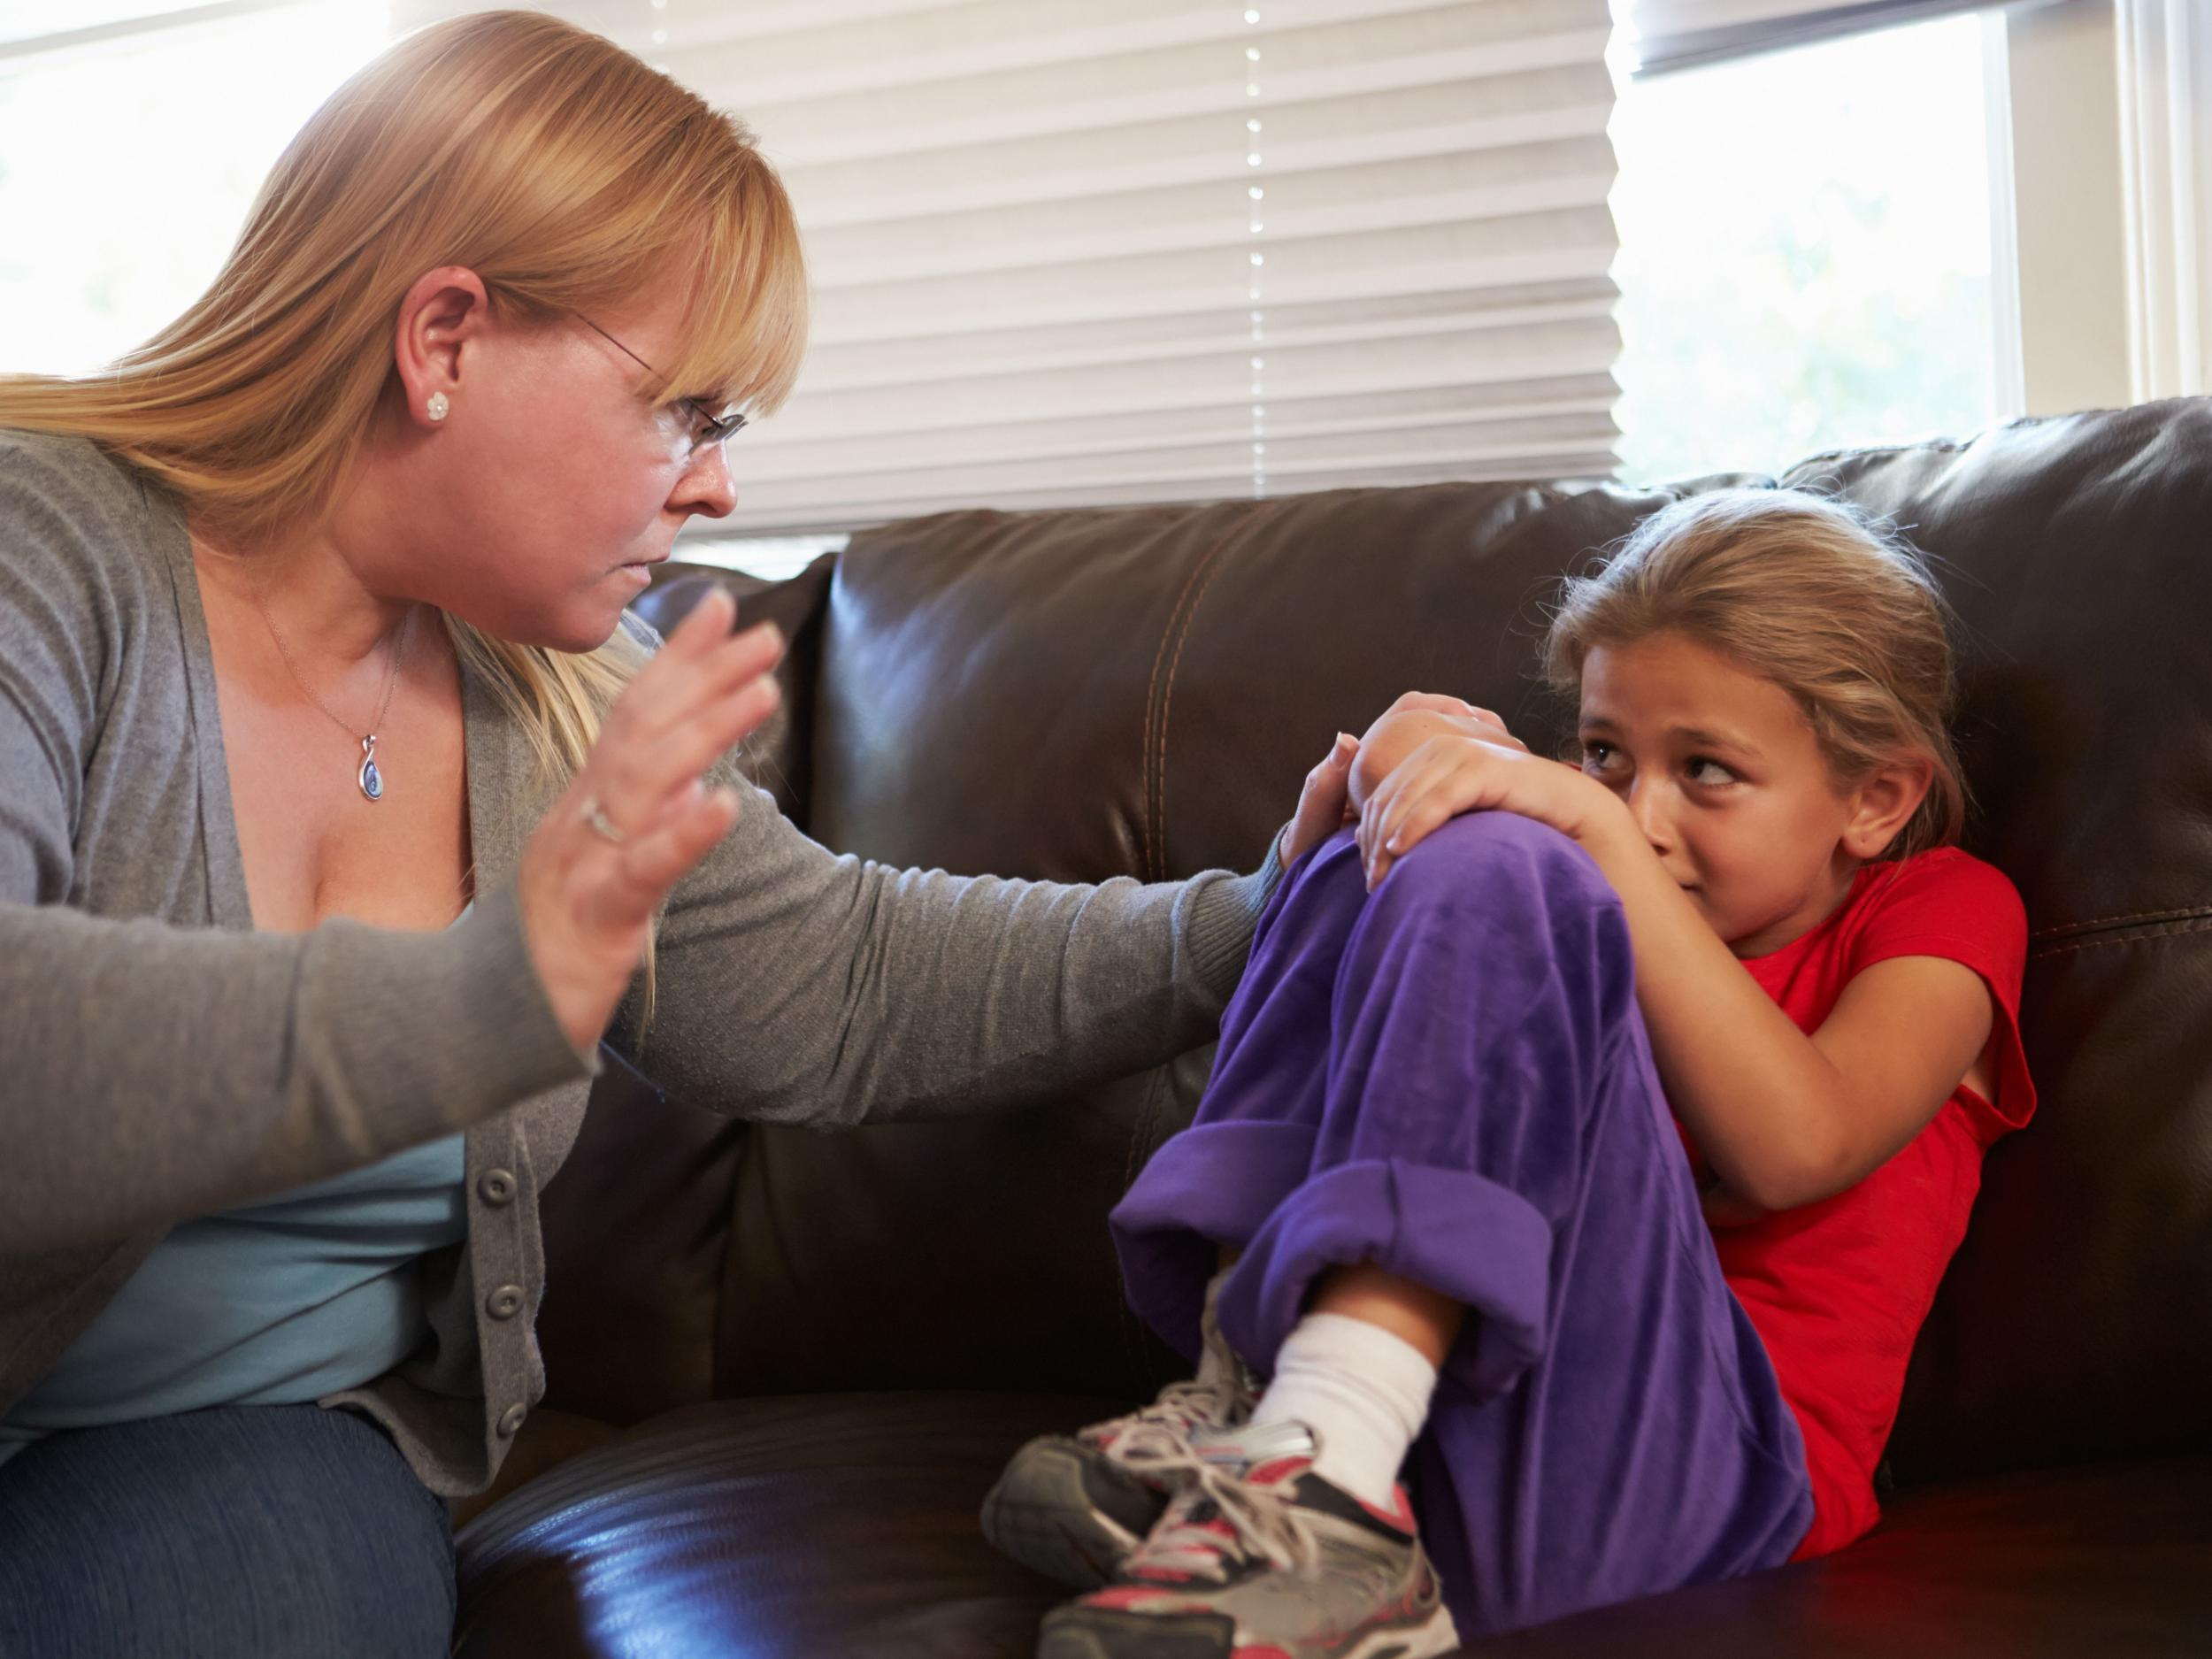 Smacking children makes them 'more aggressive and antisocial